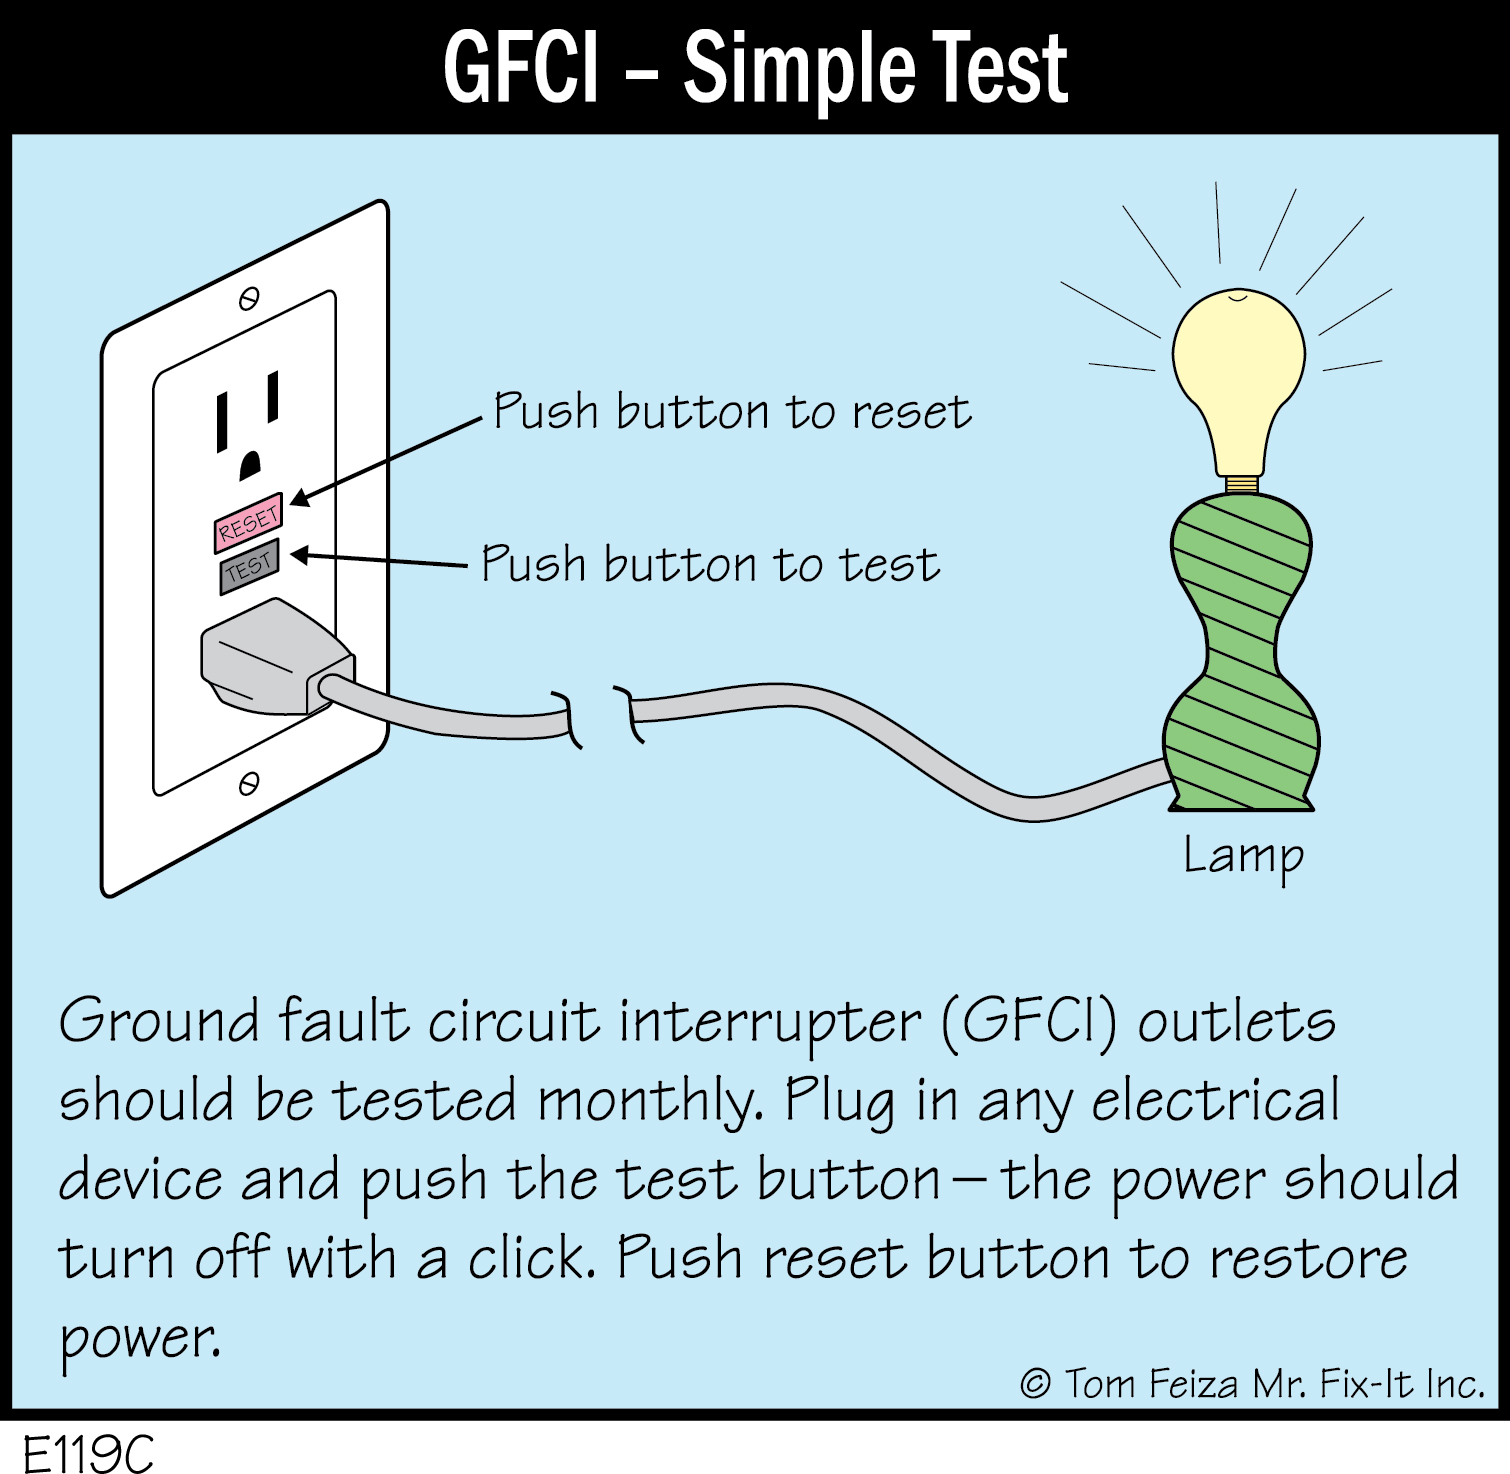 hight resolution of e119c gfci simple test